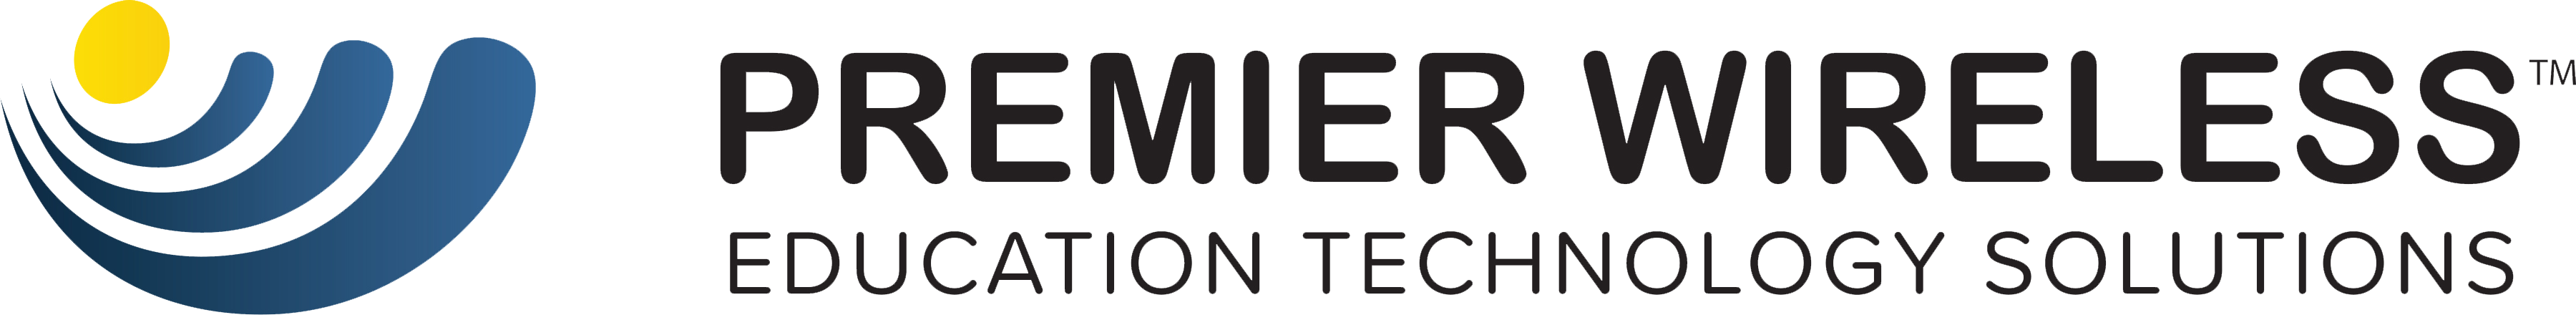 Visit the Premier Wireless Education Technology Solutions website.